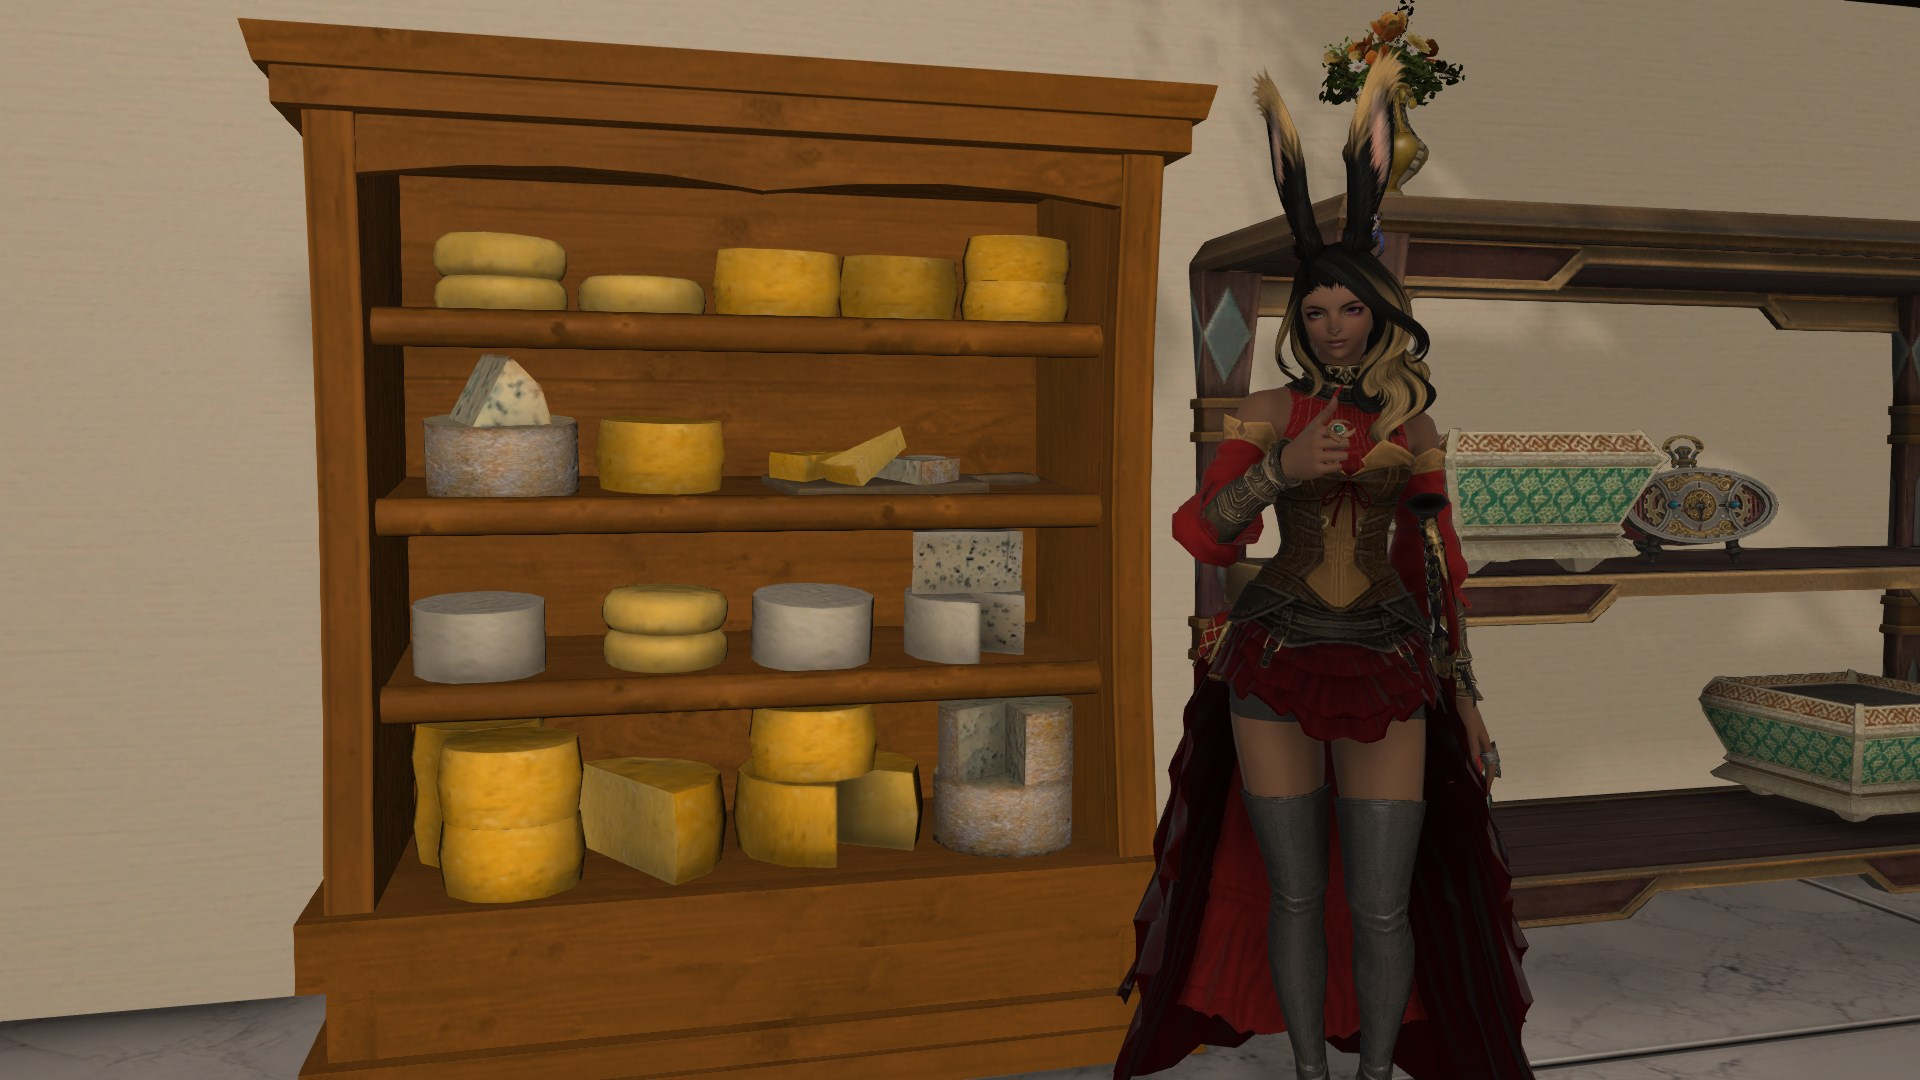 A woman with rabbit ears stands next to a shelf filled with cheese, giving a thumbs up.